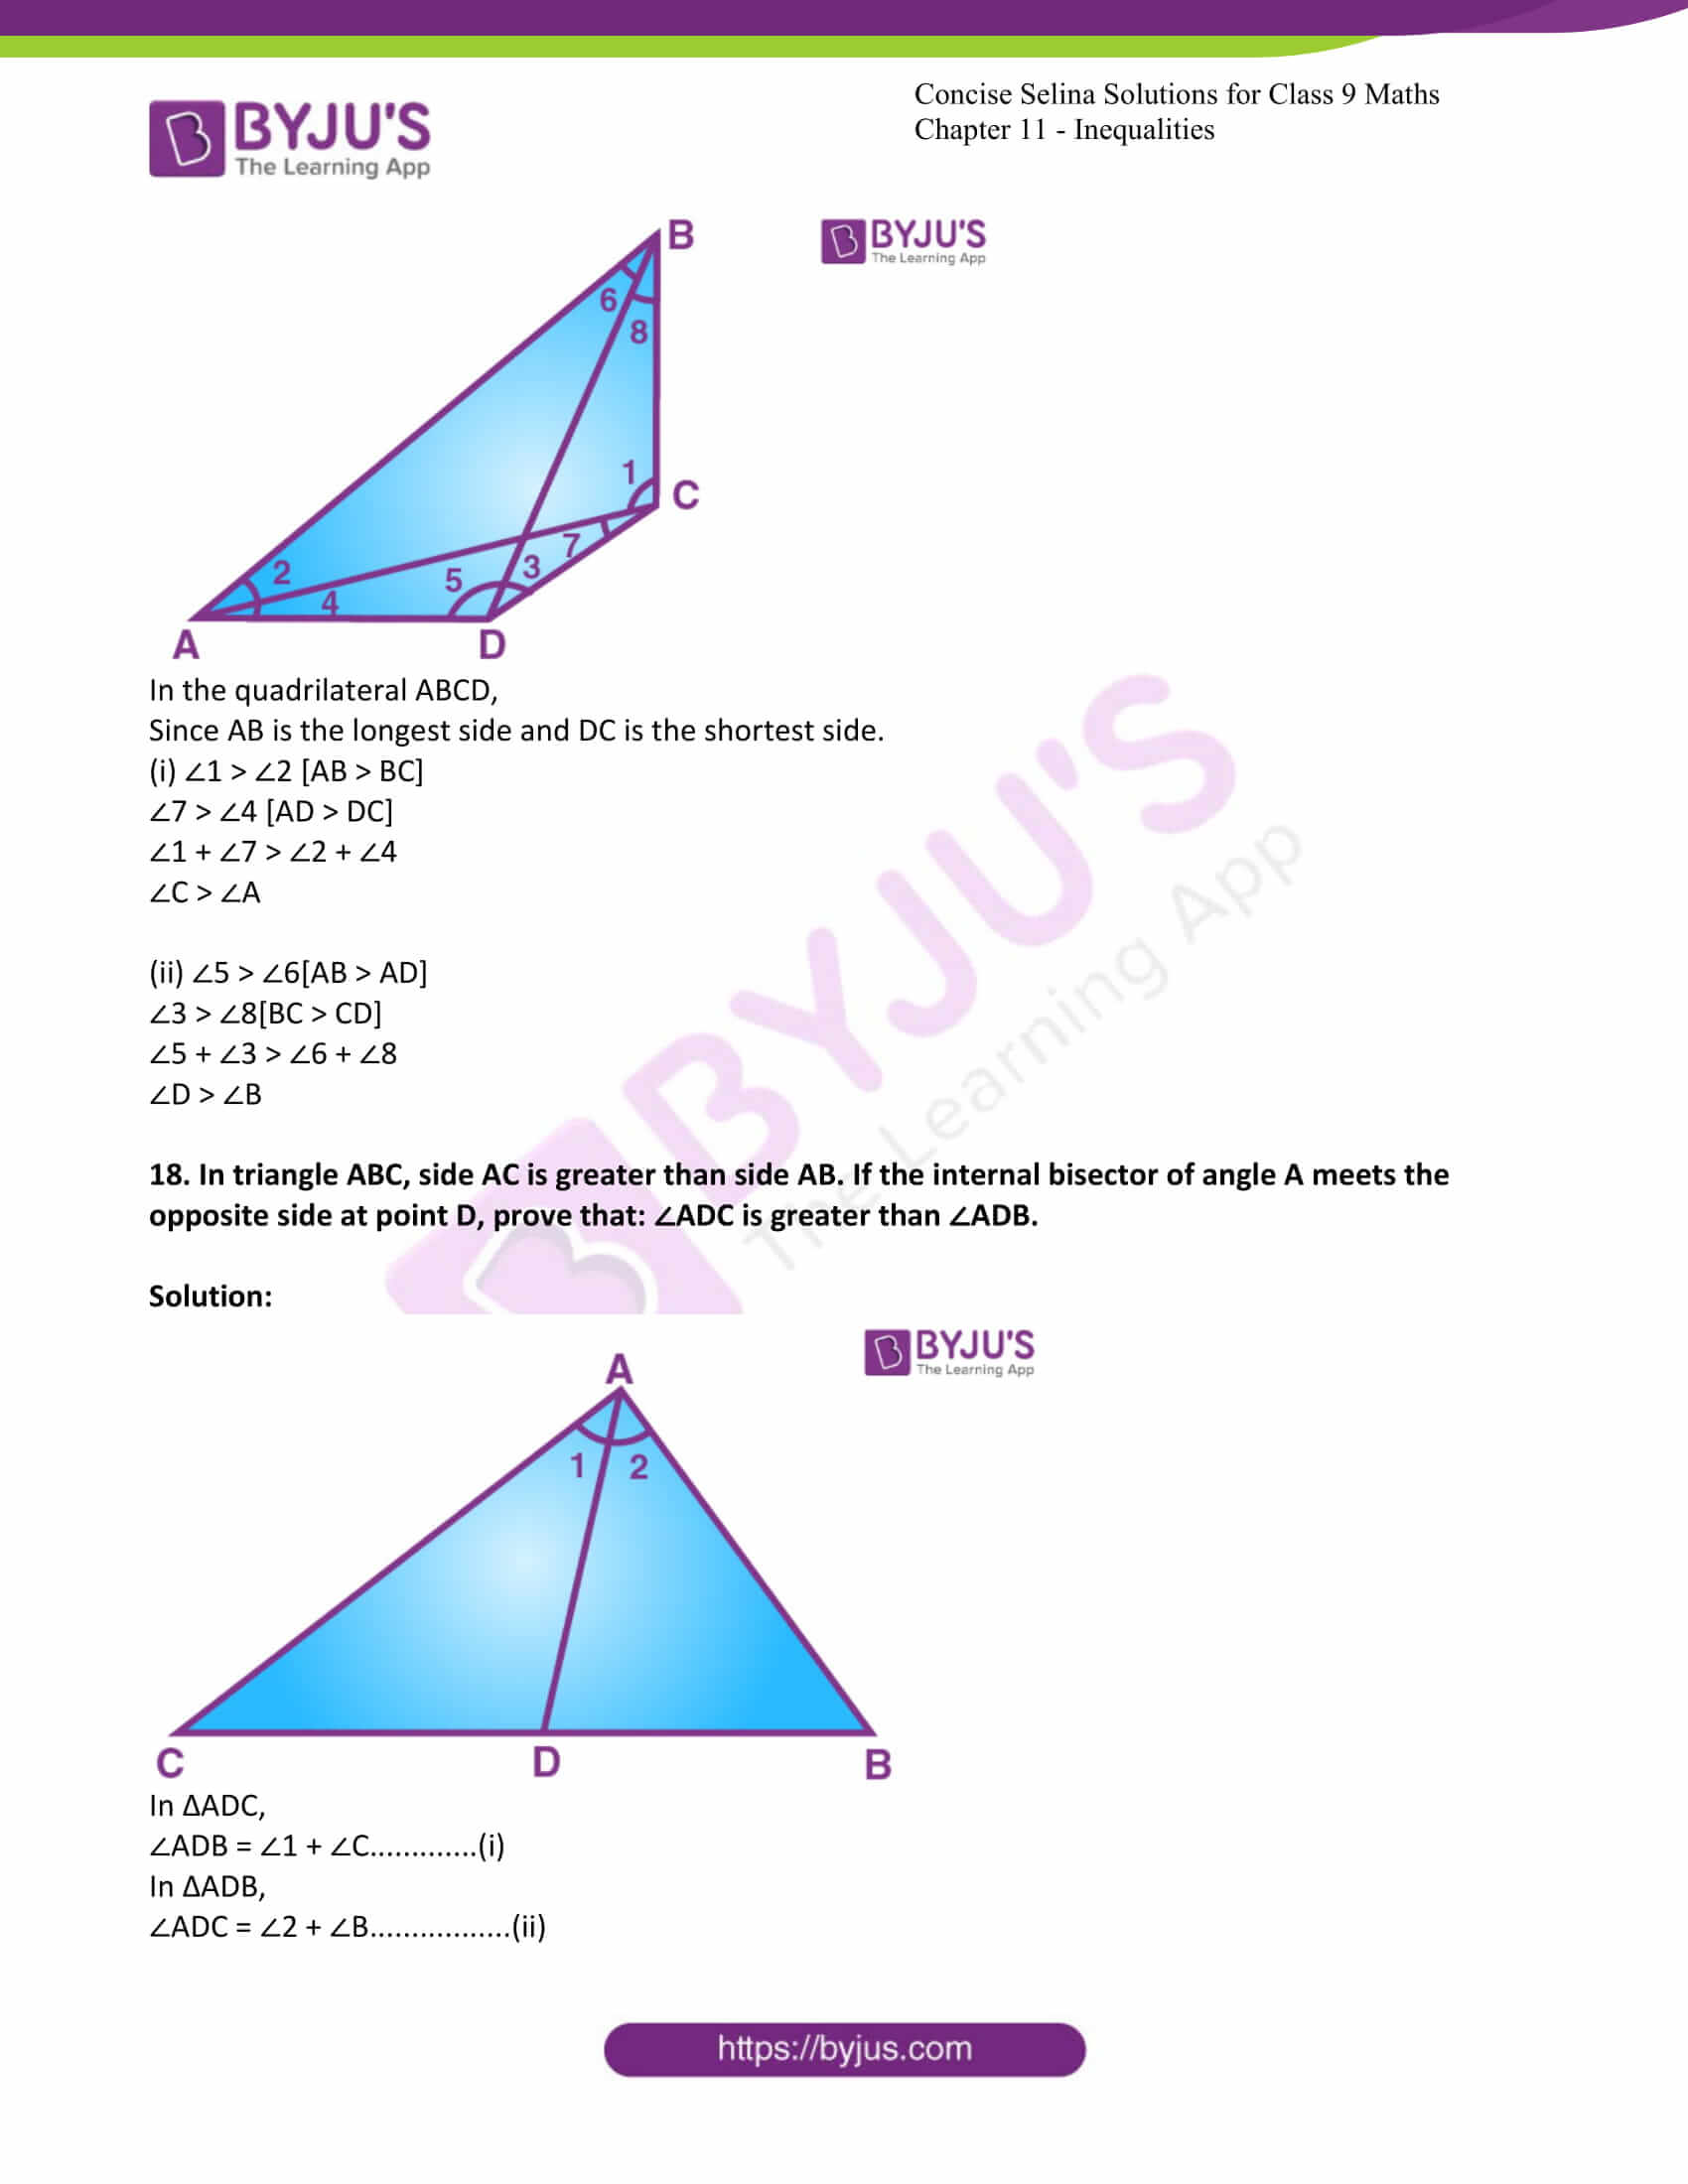 icse class 9 maths may10 selina solutions chapter 11 inequalities 16